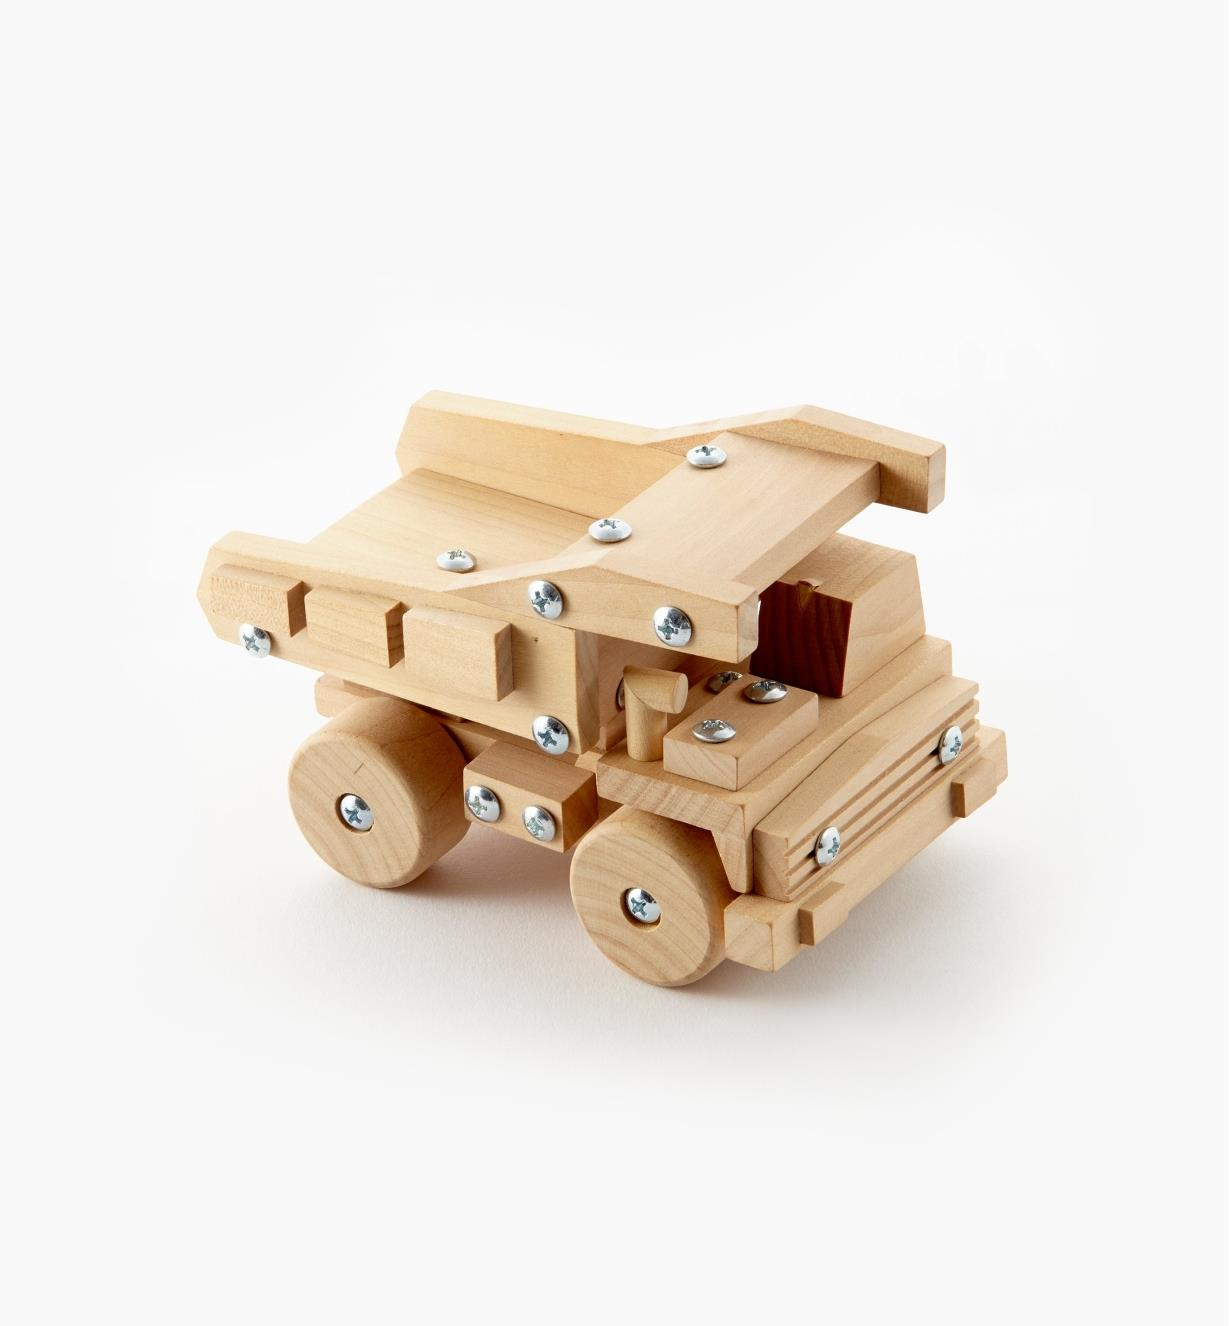 09A0557 - Dump Truck Easy-To-Build Wooden Toy Kit